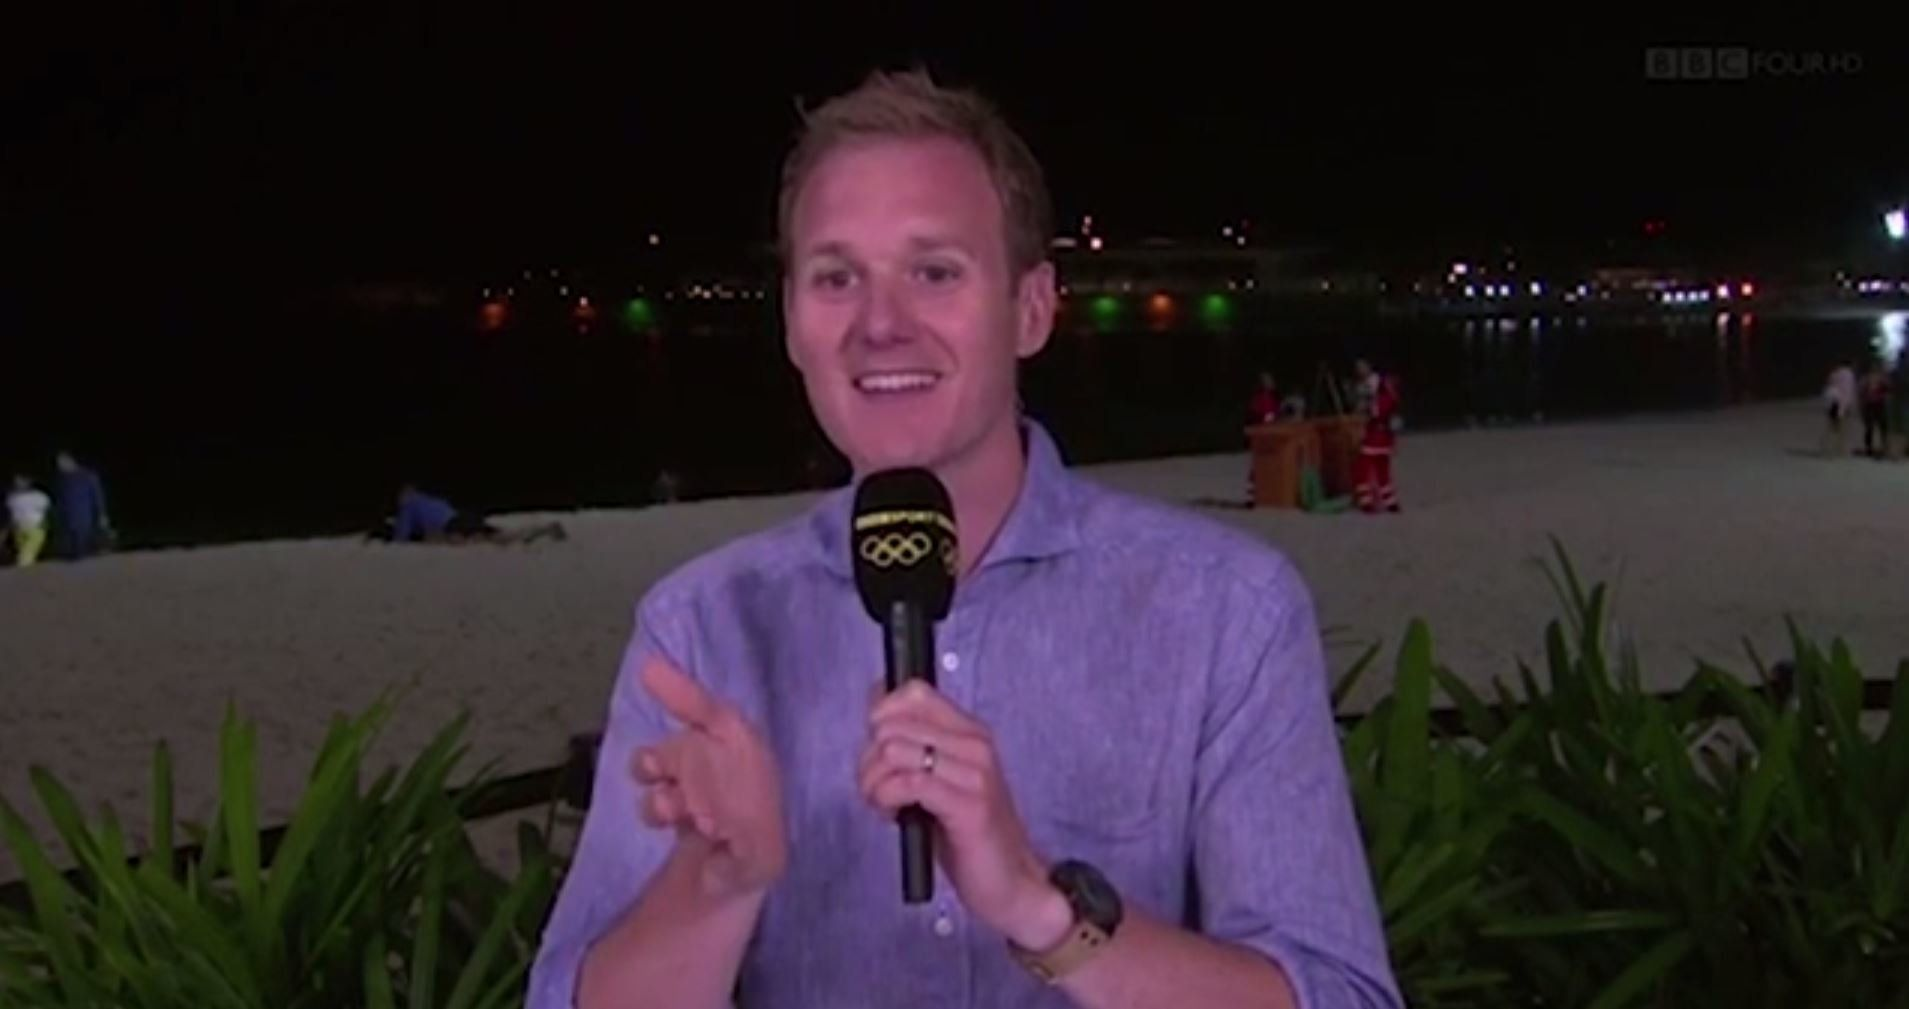 BBC Presenter Struggles To Maintain Olympics Coverage As Couple 'Have Sex' Behind